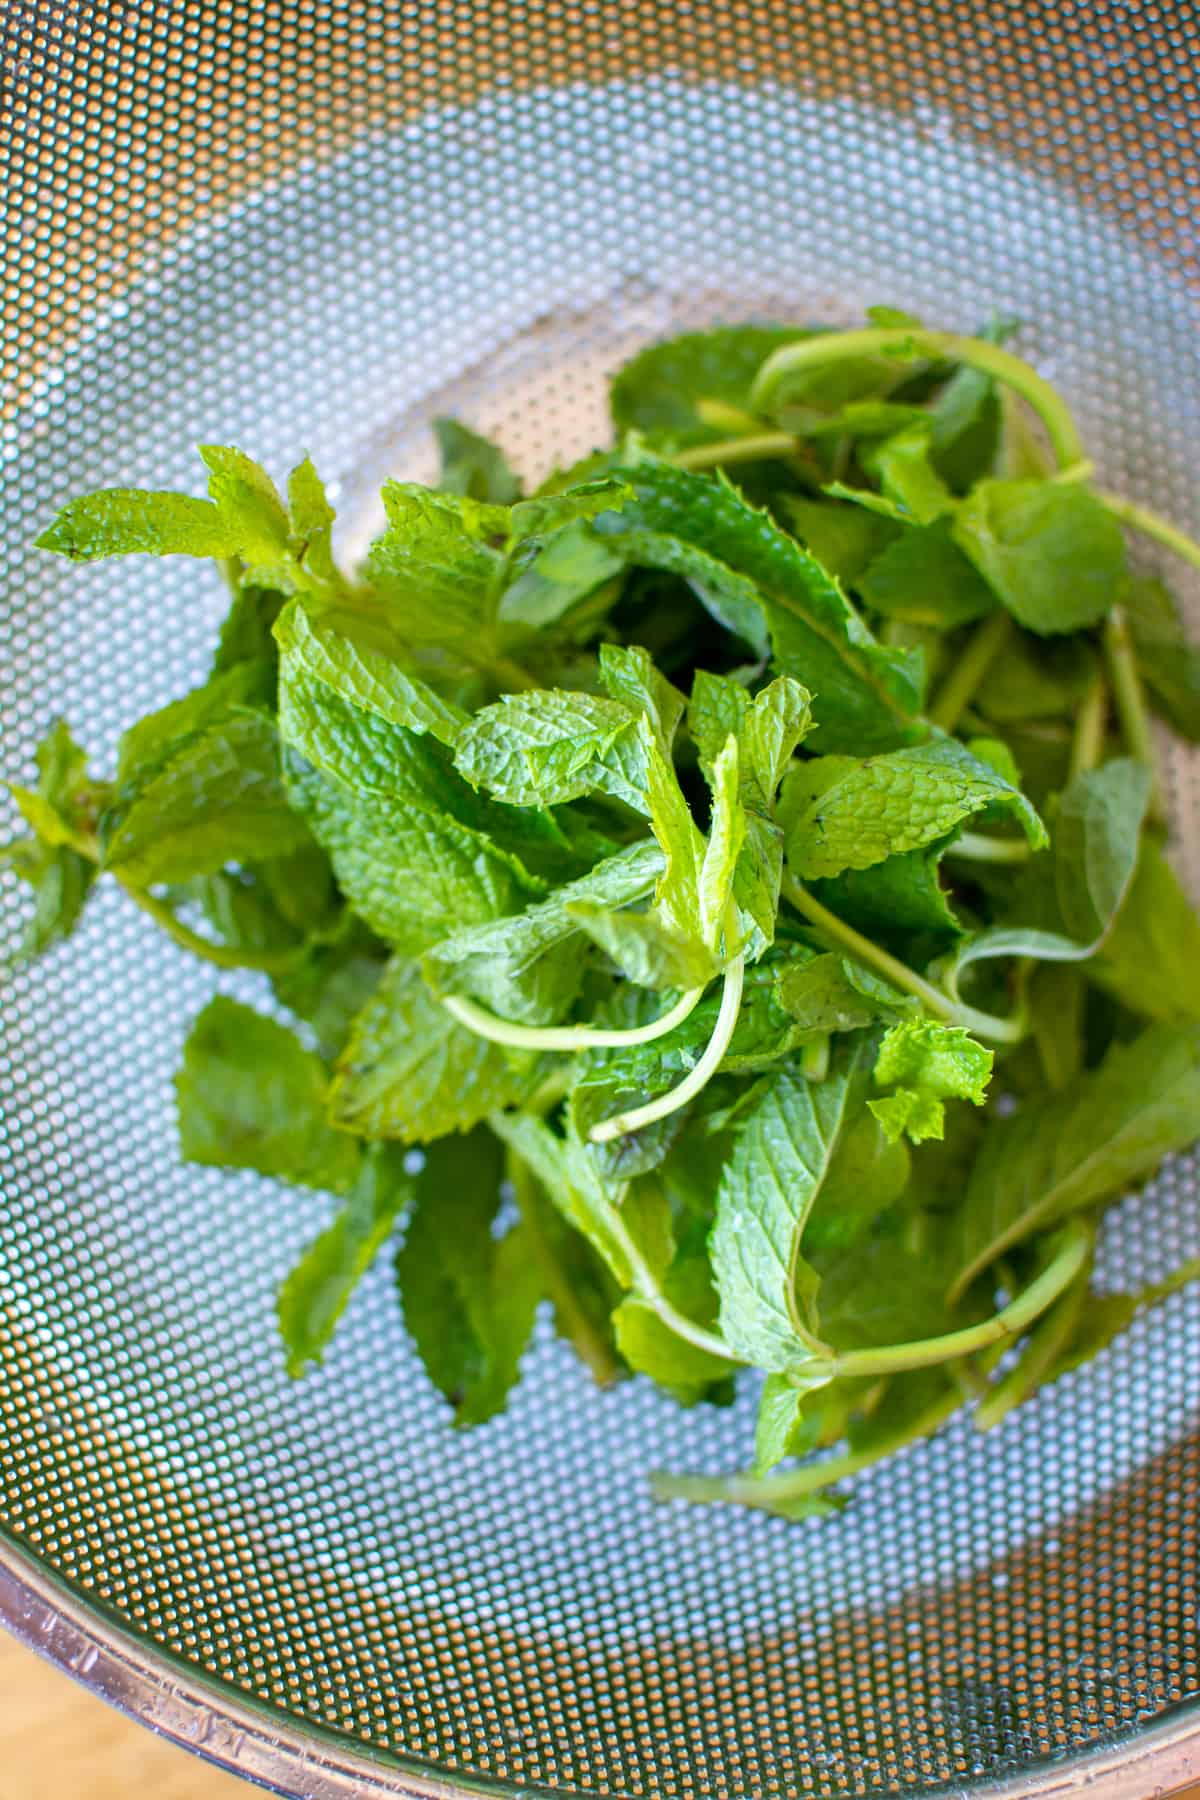 A bunch of mint sitting in a metal colander on top of a white plate.